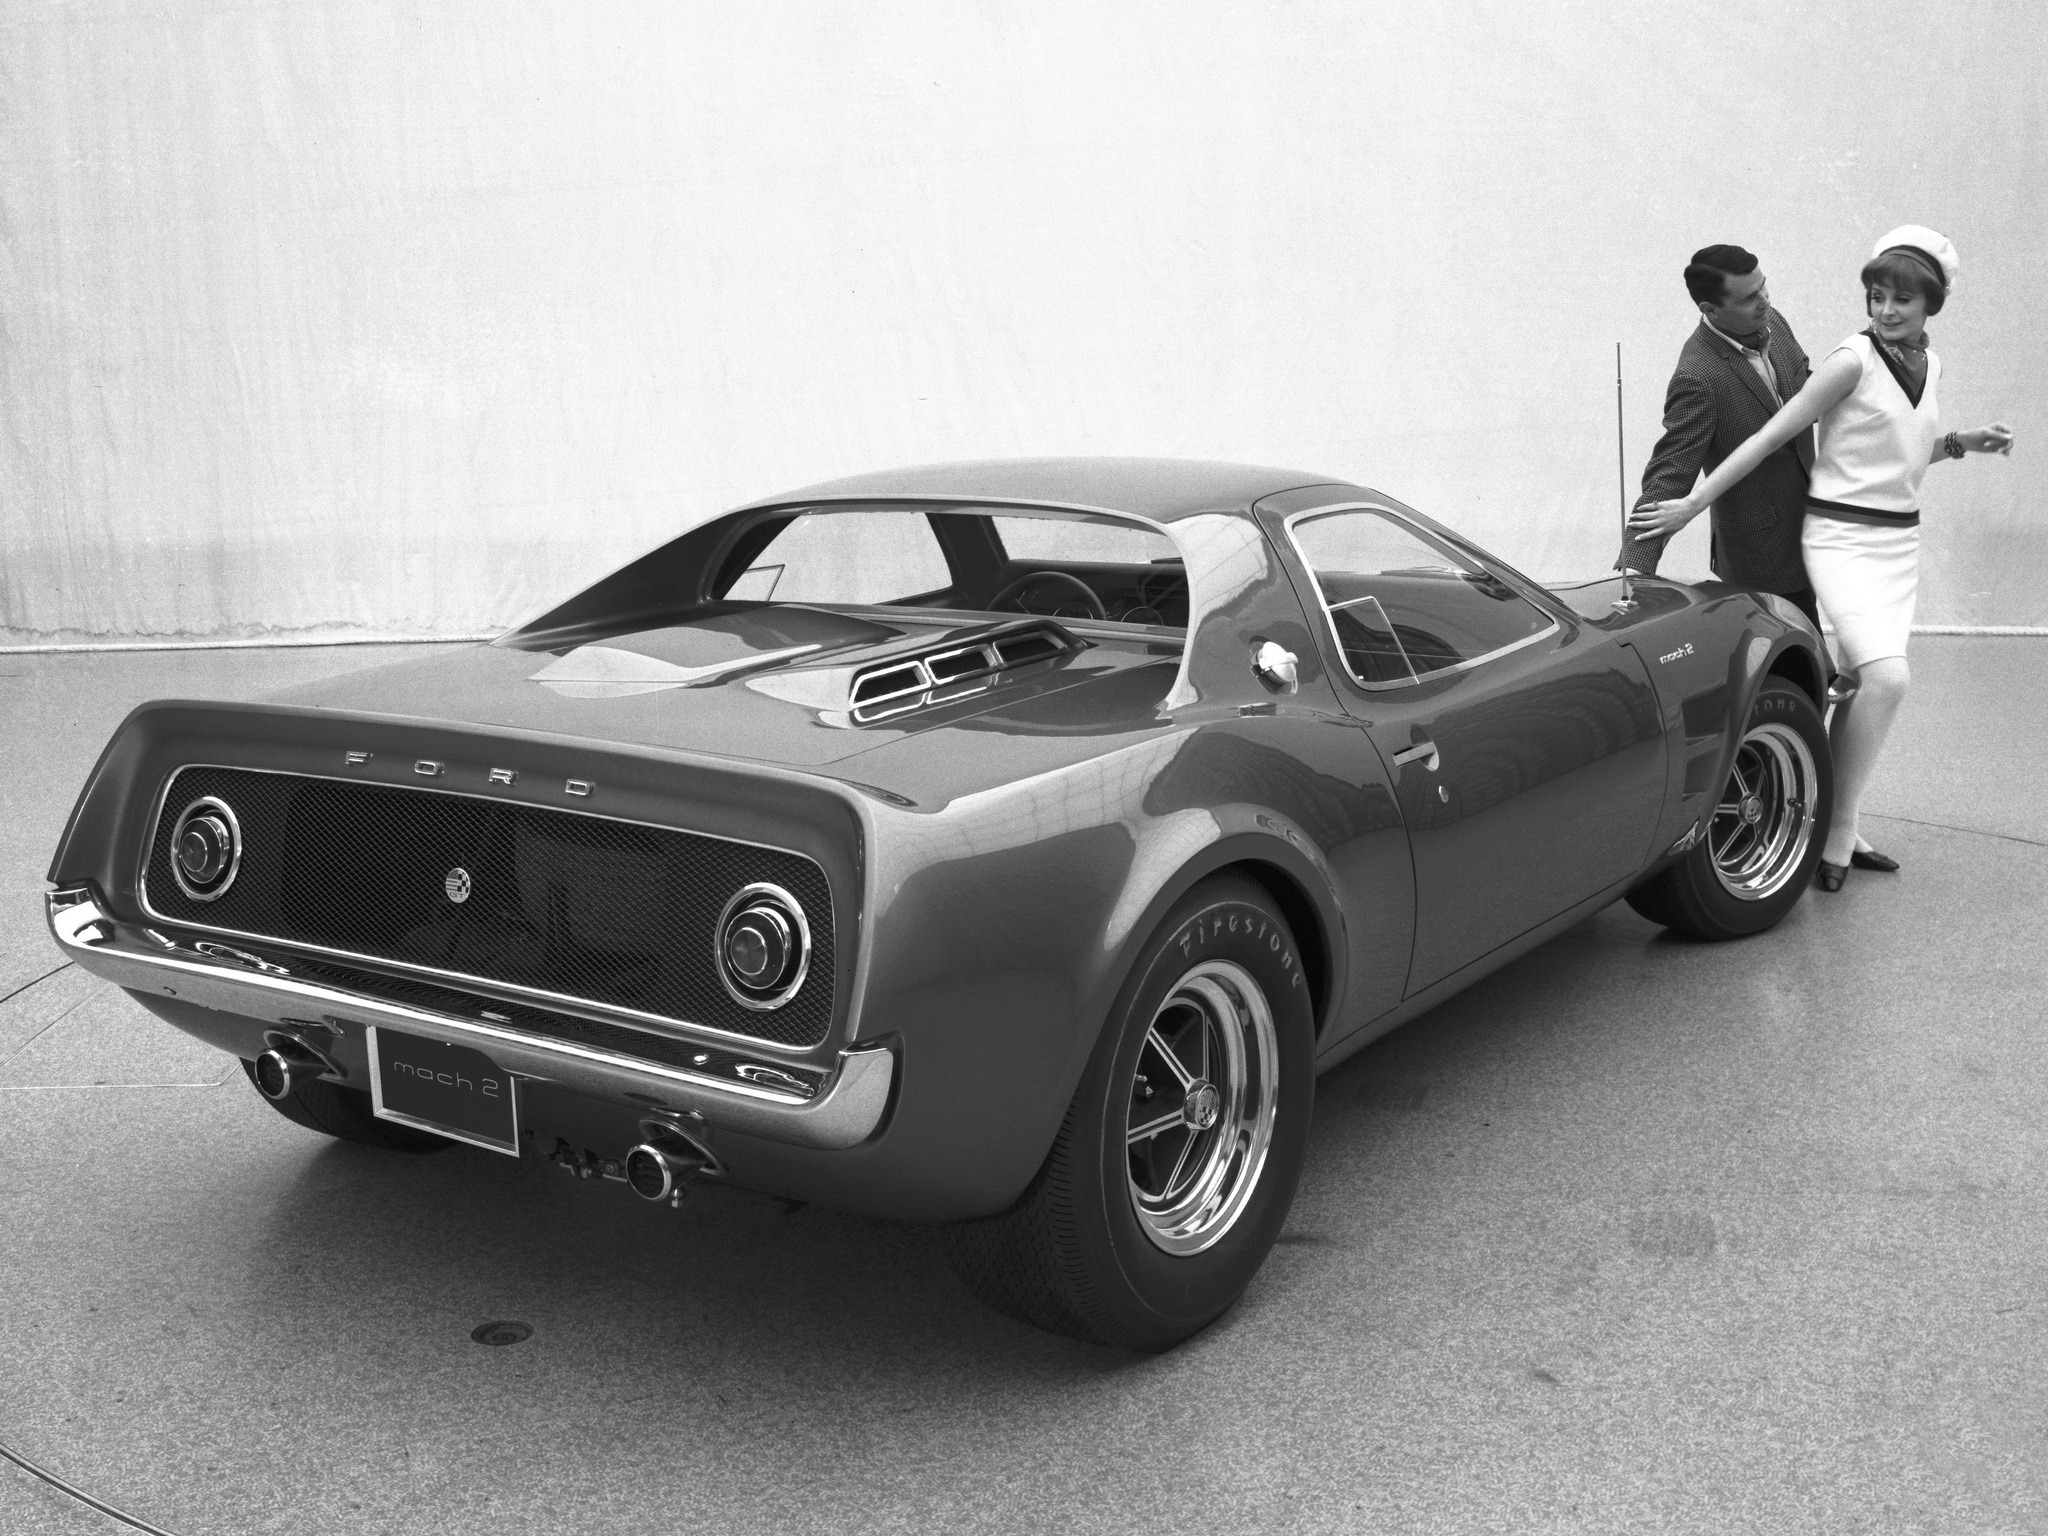 Images Of Mustang Cars Mustang Mach Concept Car